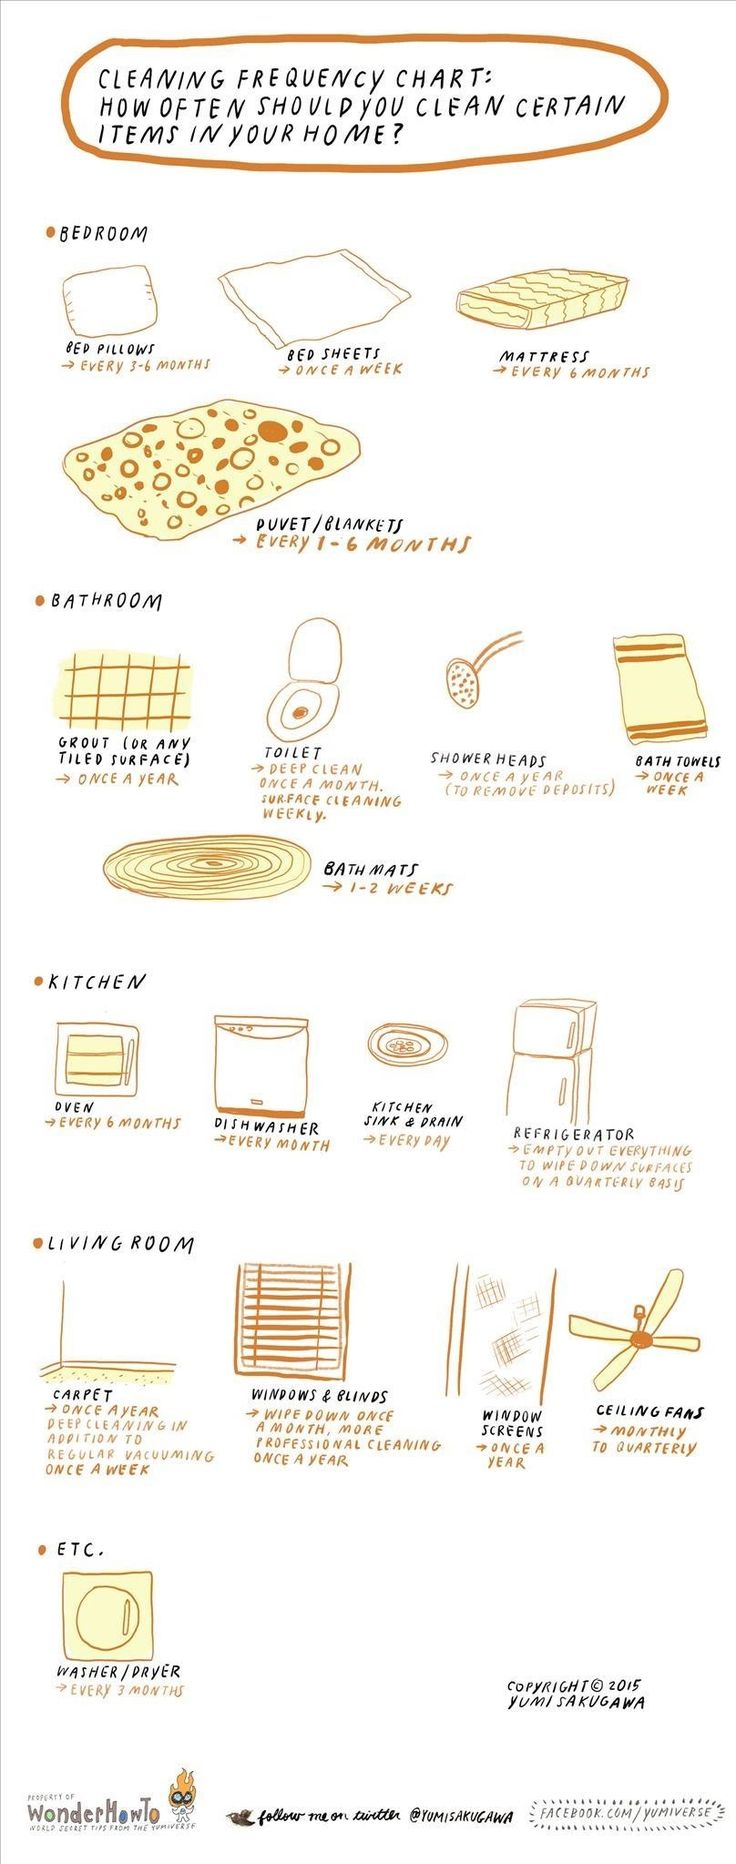 Cleaning Frequency Chart: How Often Should You Clean Certain Items in Your Home?